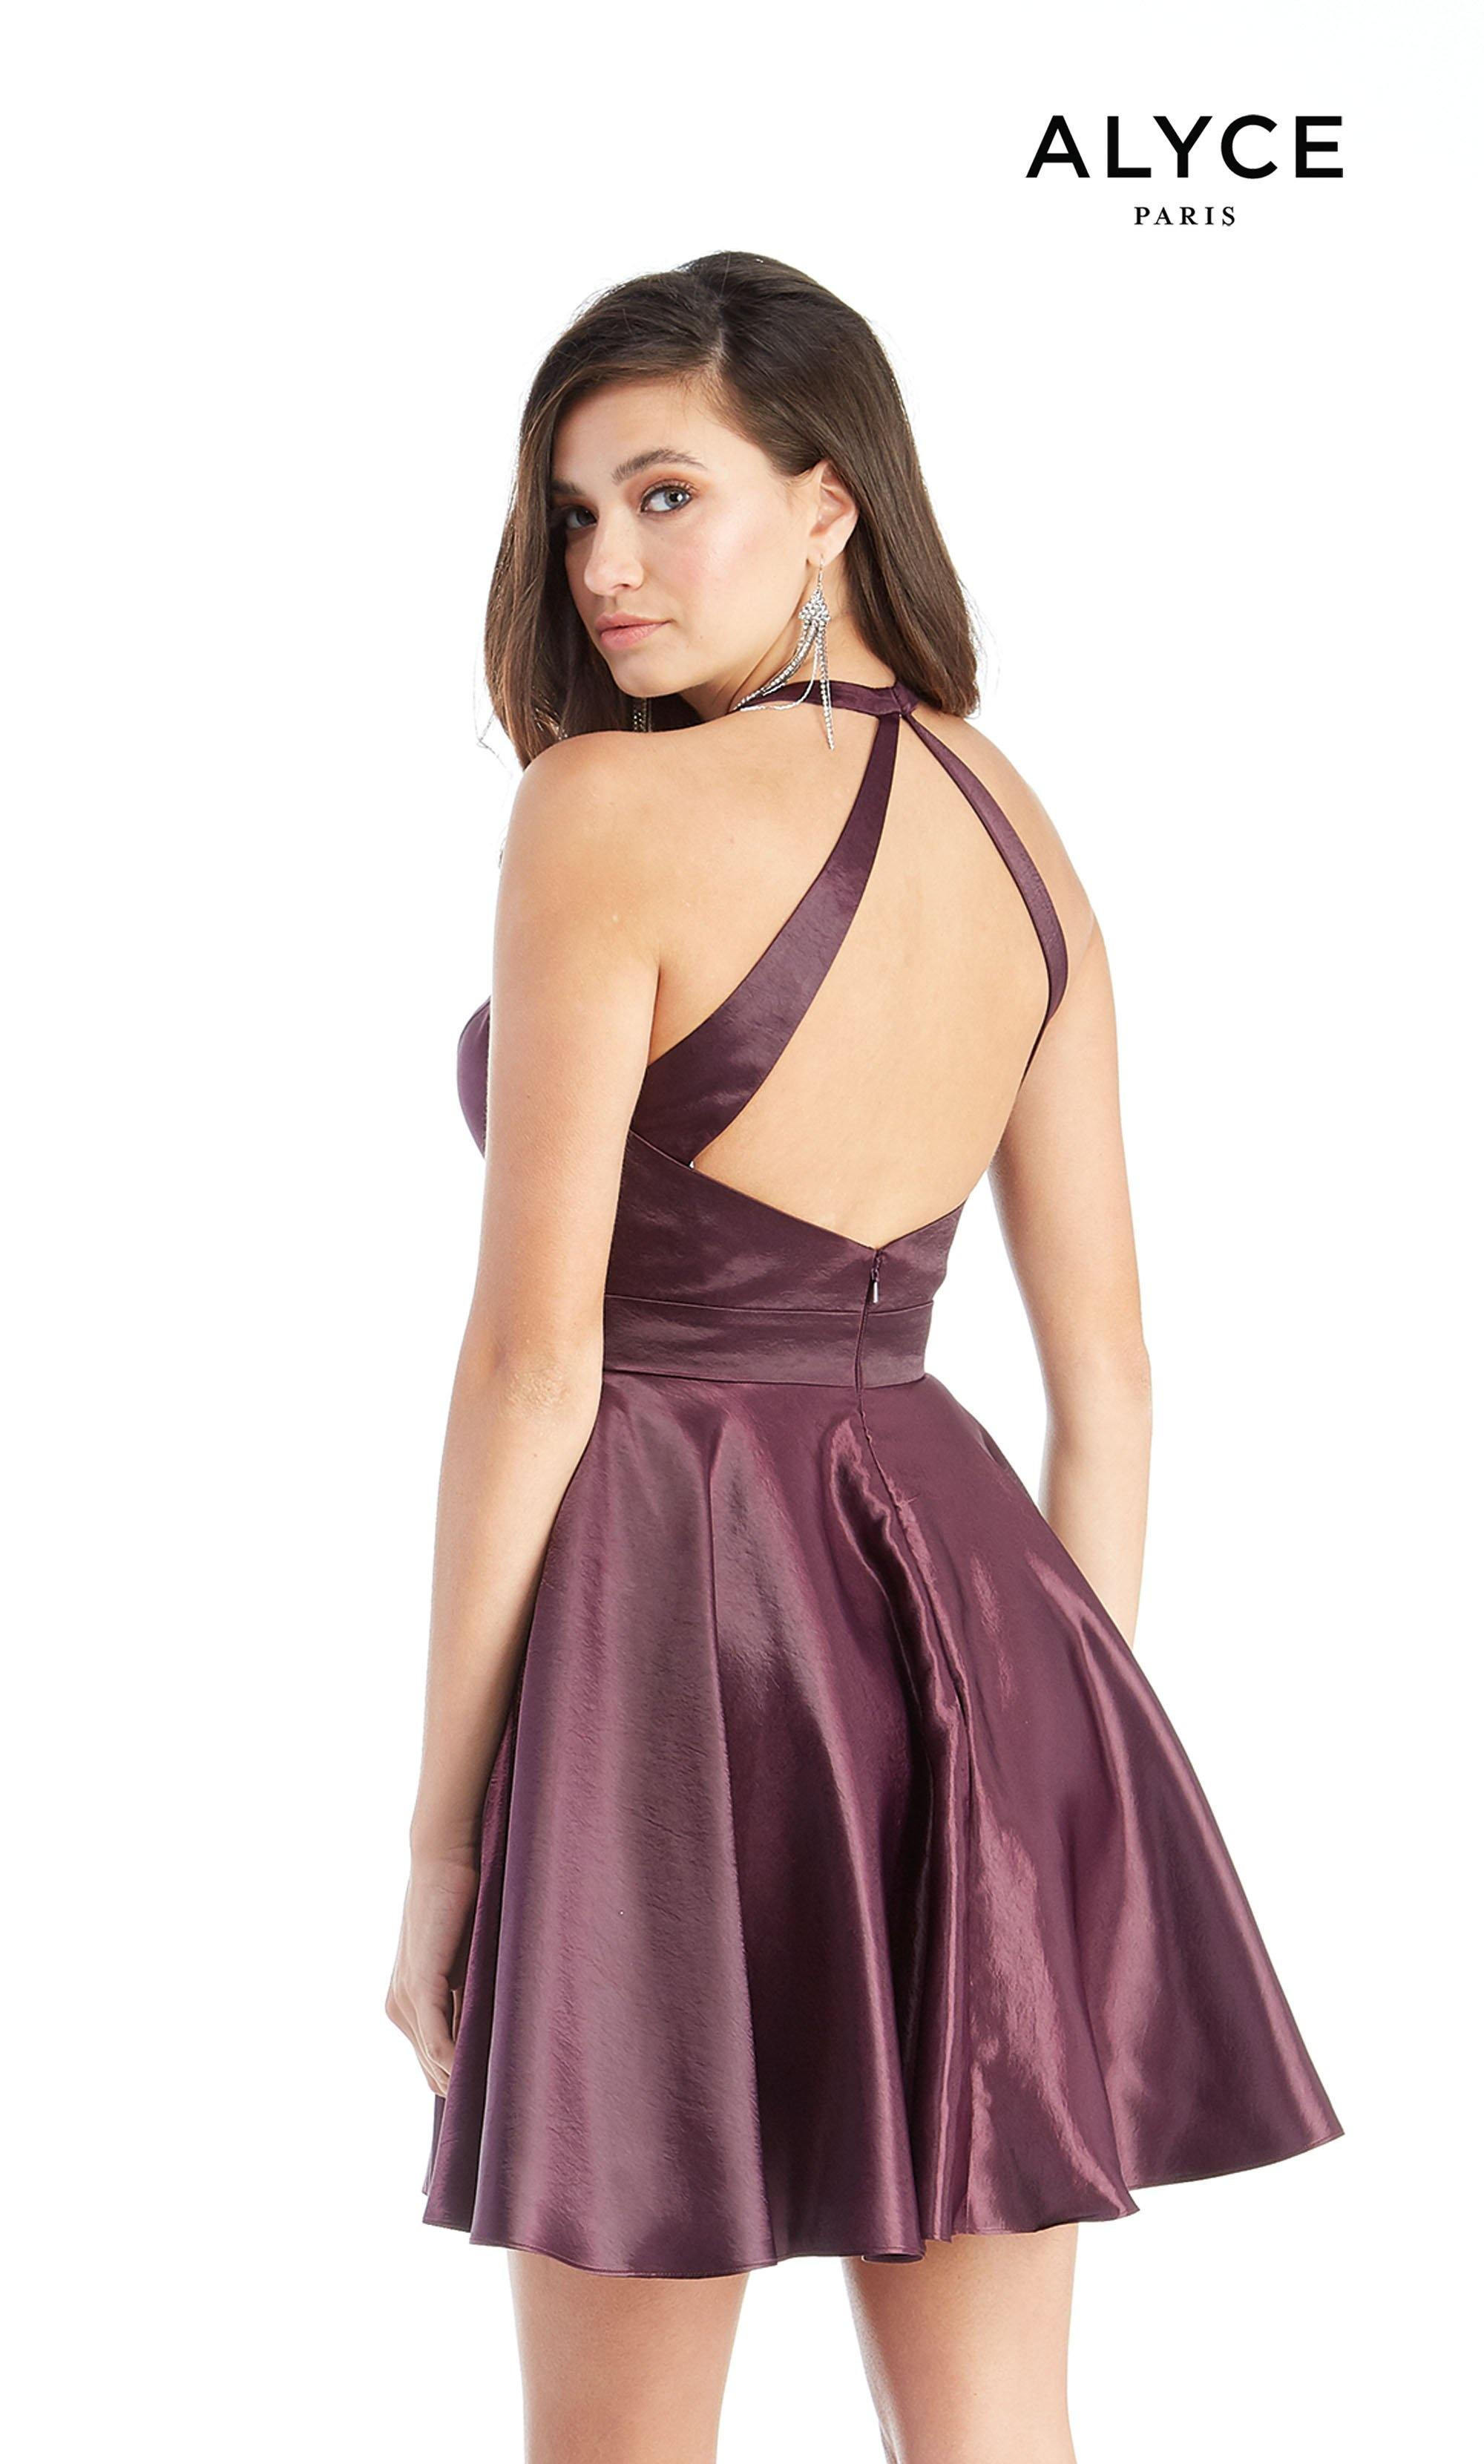 Short Purple simple party dress with an adjustable plunging neckline